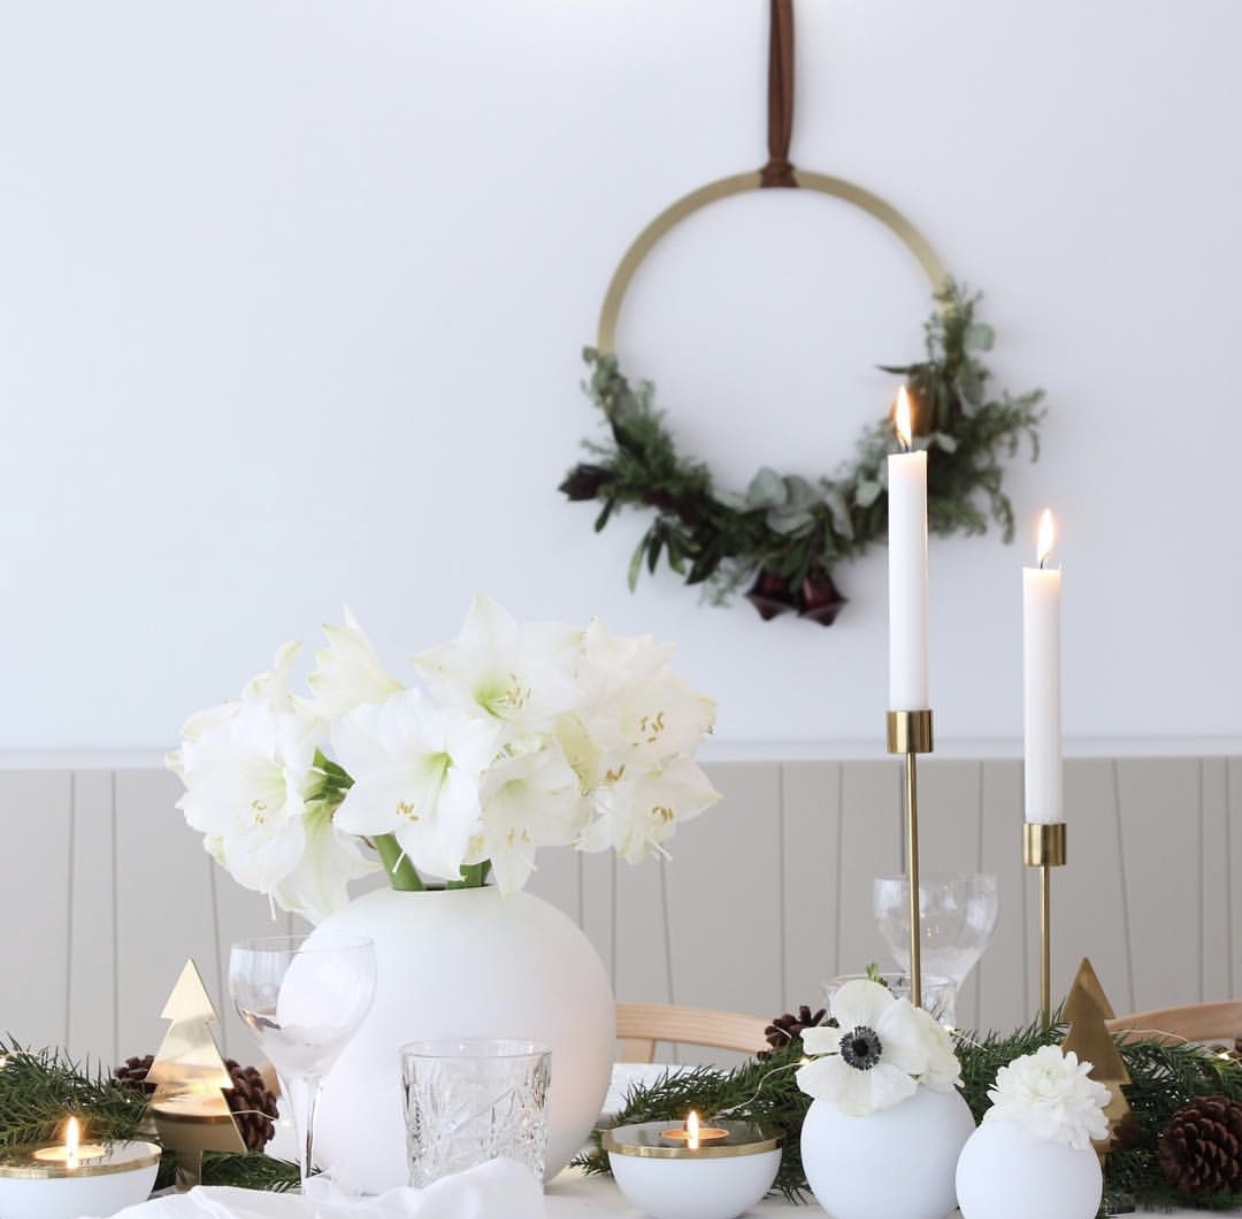 Vase ball wreath brass, cooee design